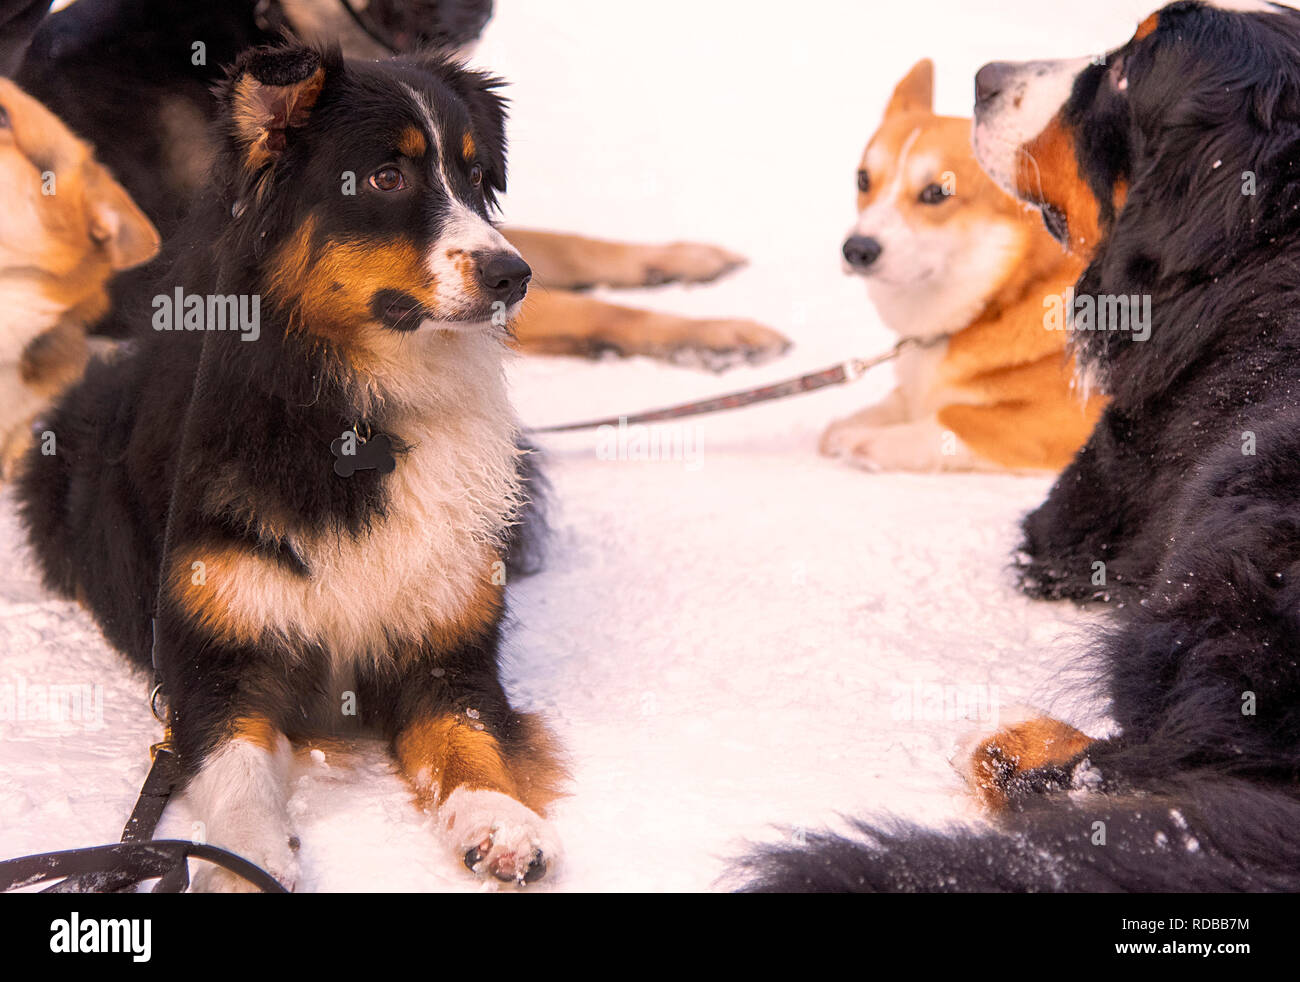 Aussie Australian shepherd lying on the snow among other dog - Stock Image